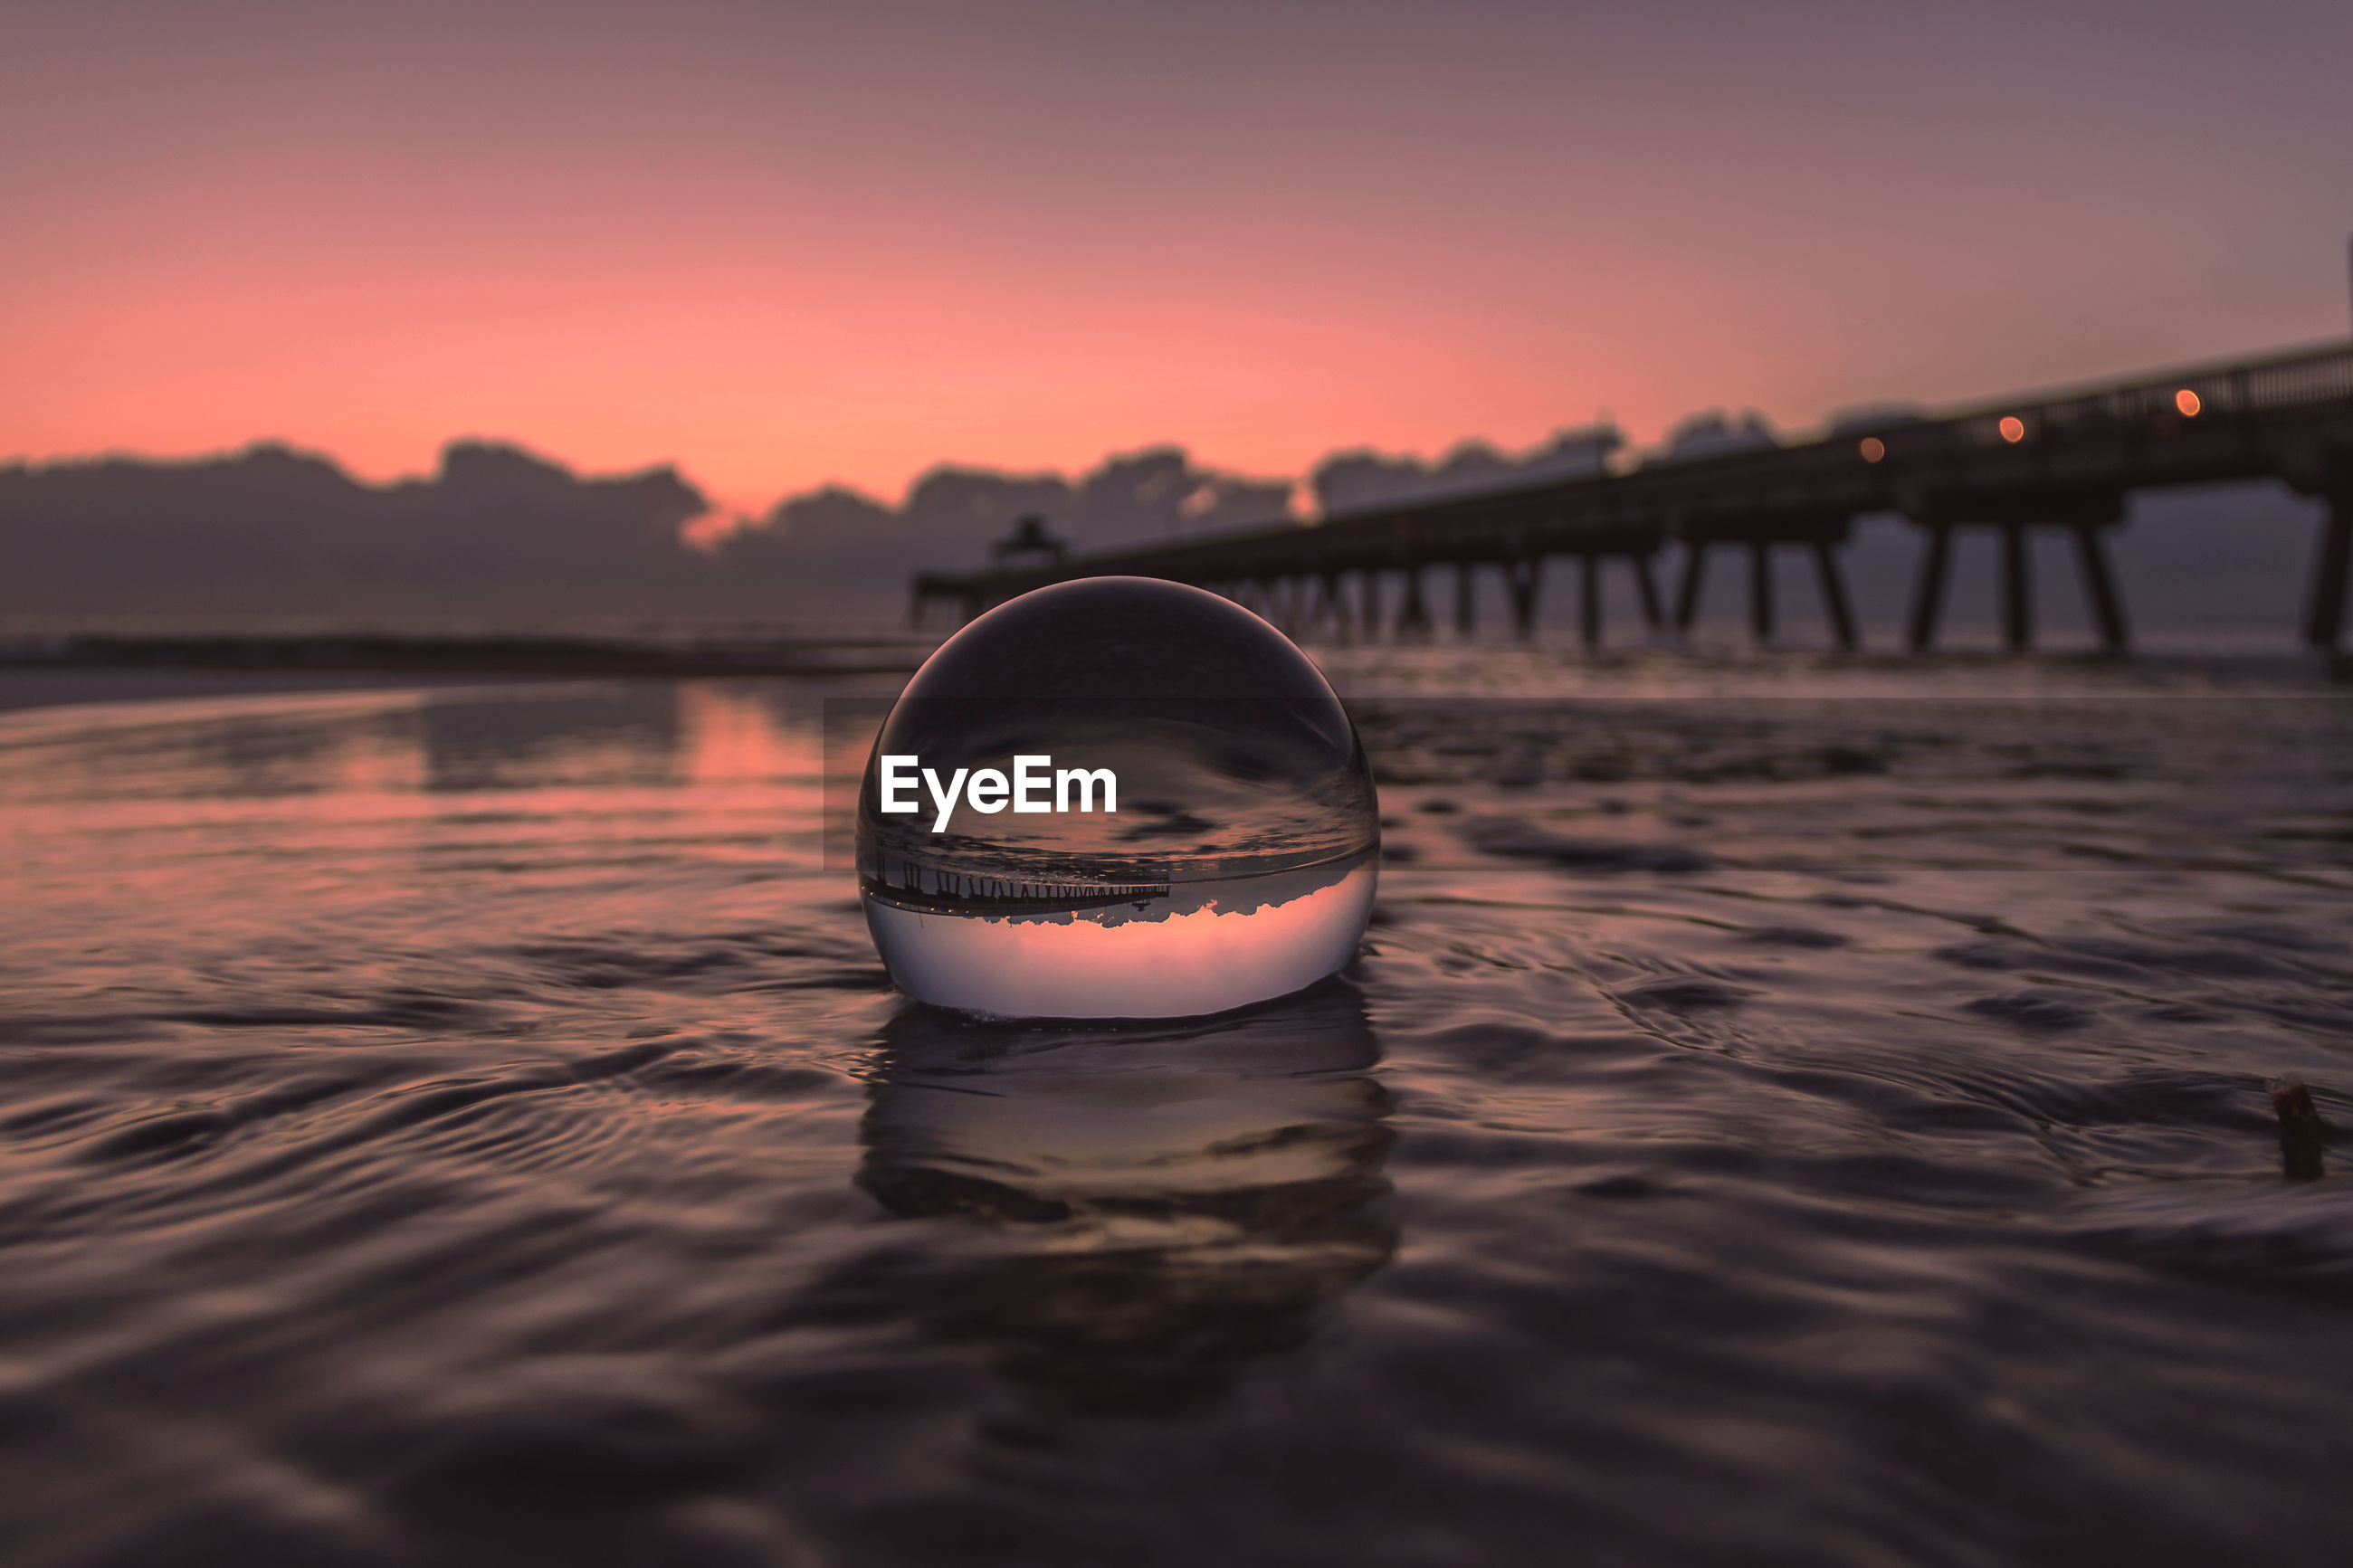 Reflection of calm sea in transparent ball